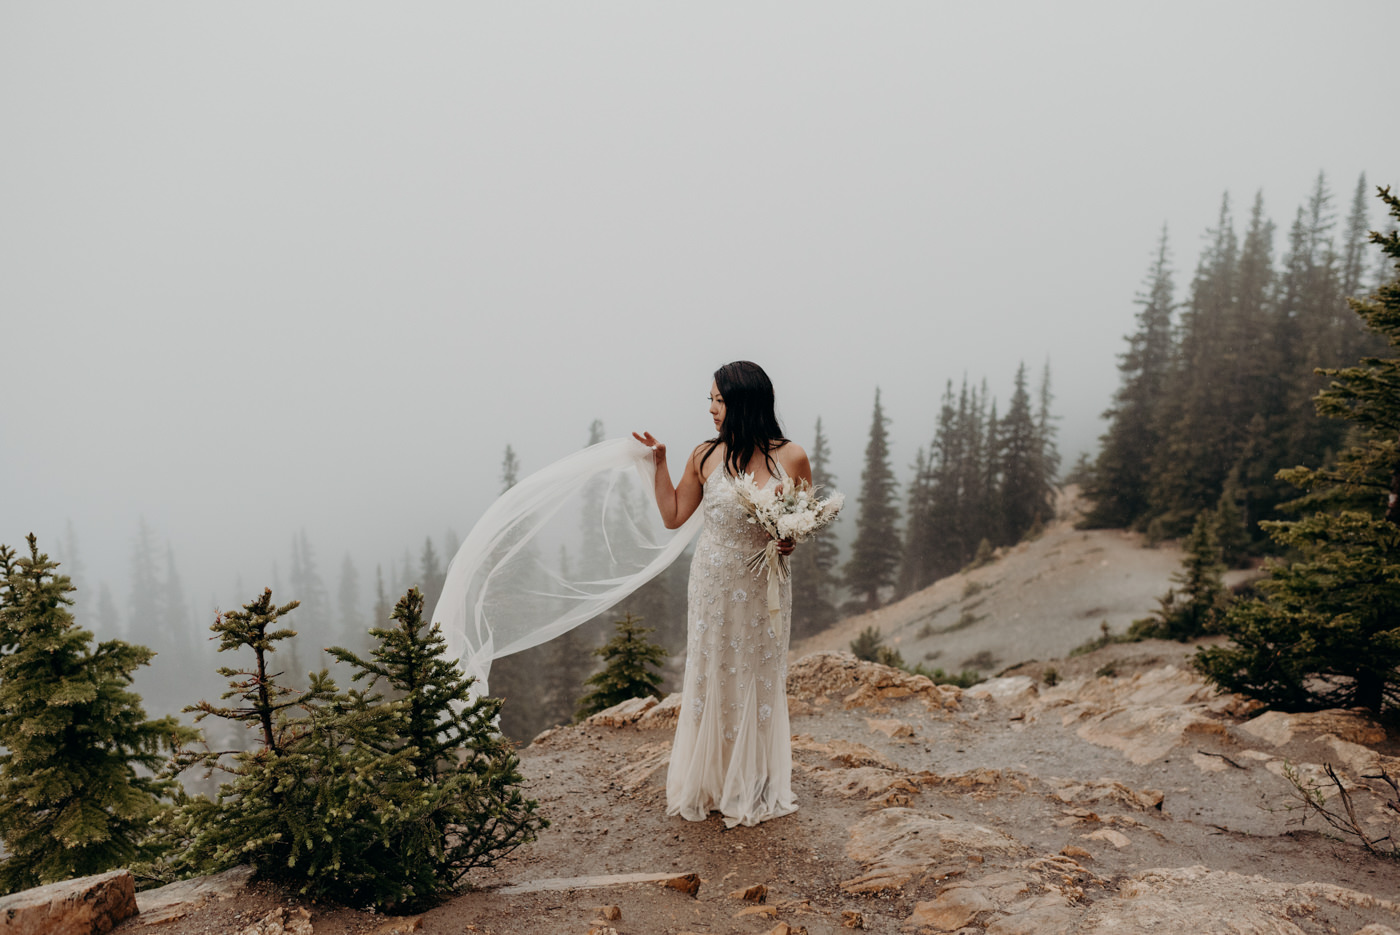 Bride on mountainside on a rainy cloudy morning